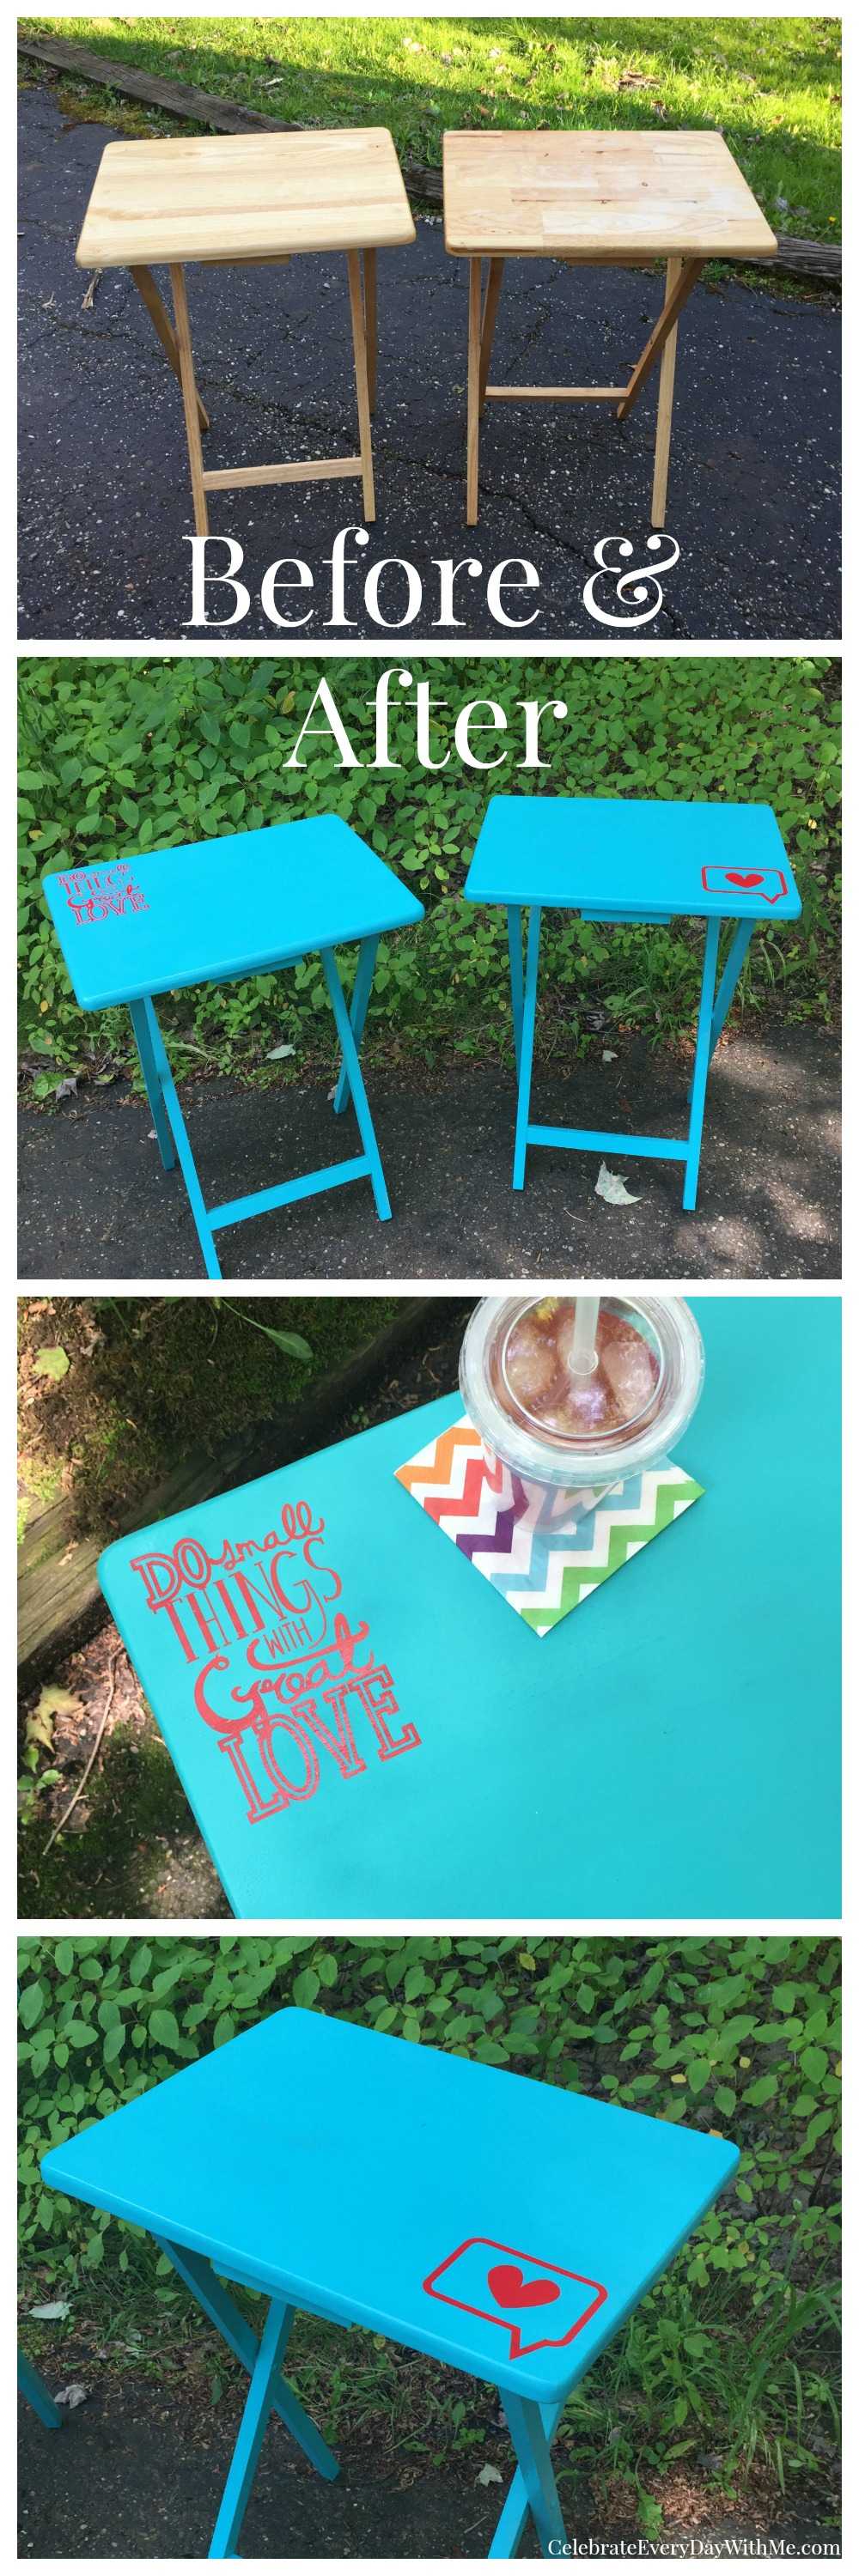 Great Garage Sale Finds: TV Tray Makeover Celebrate Every Day With Me